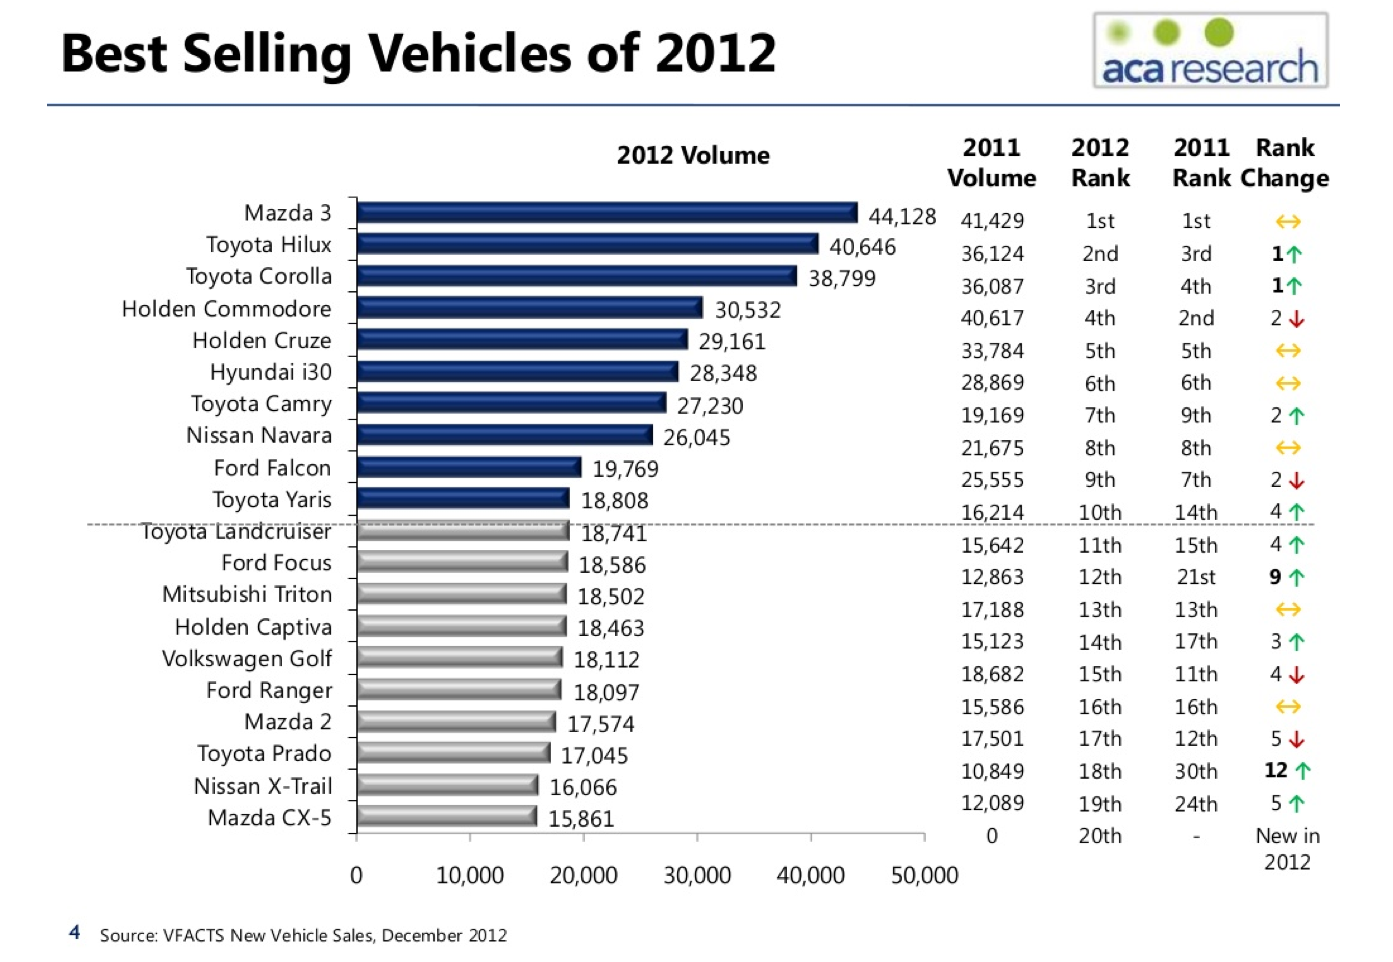 Australia top selling car data (2012) shows shift to Japanese brands